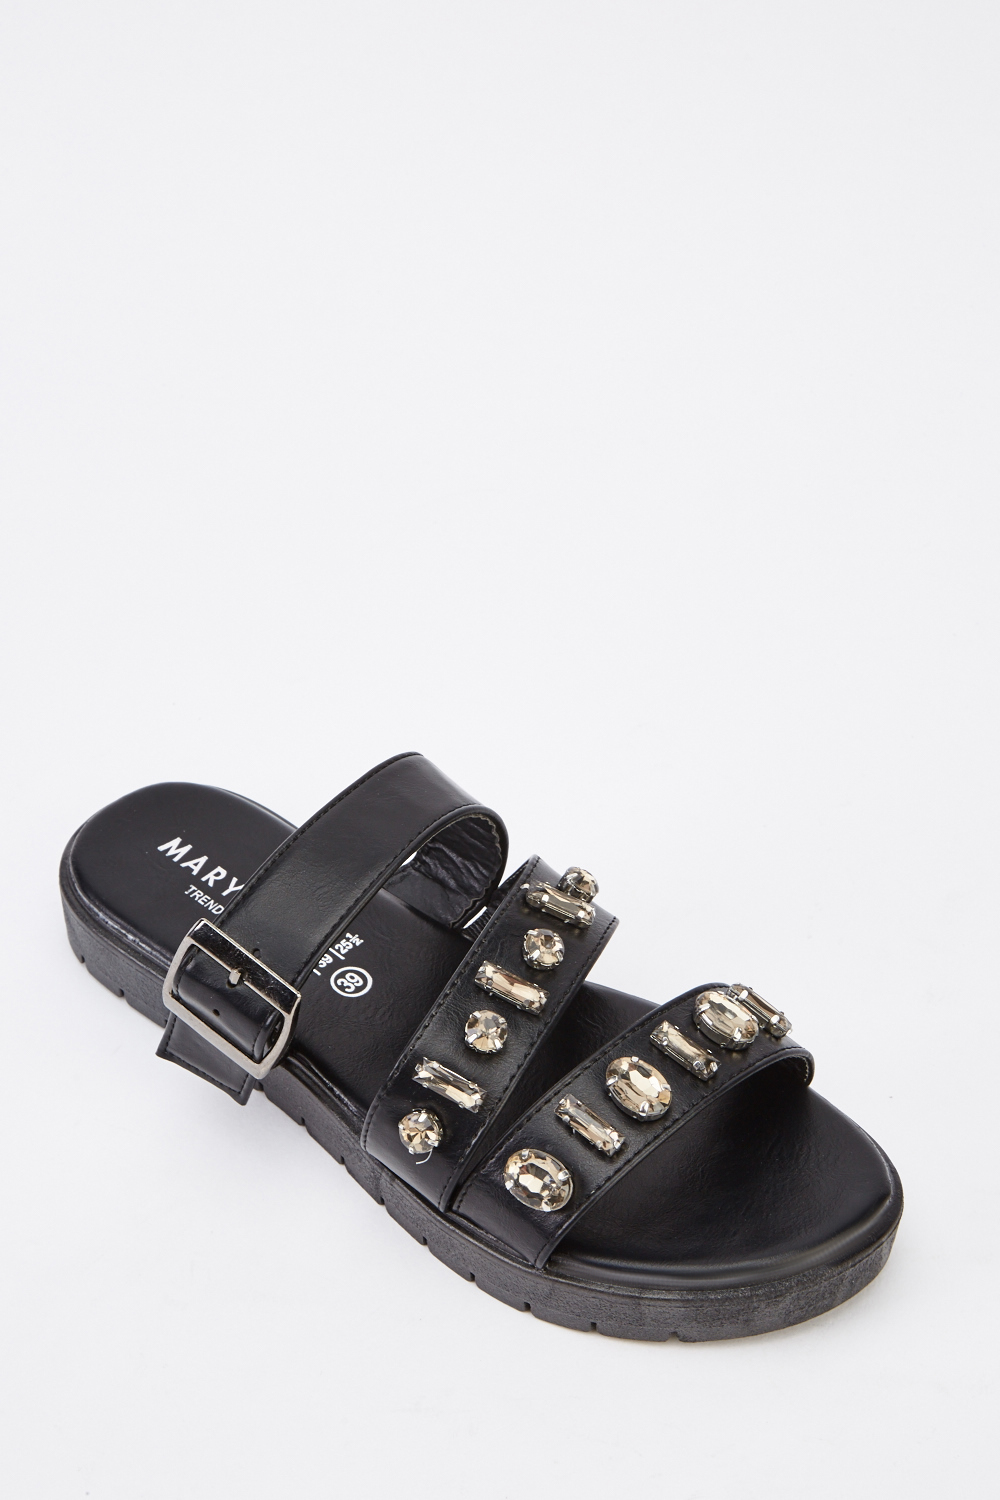 5a73df3abab Black Embellished Strappy Sandals - Just £5